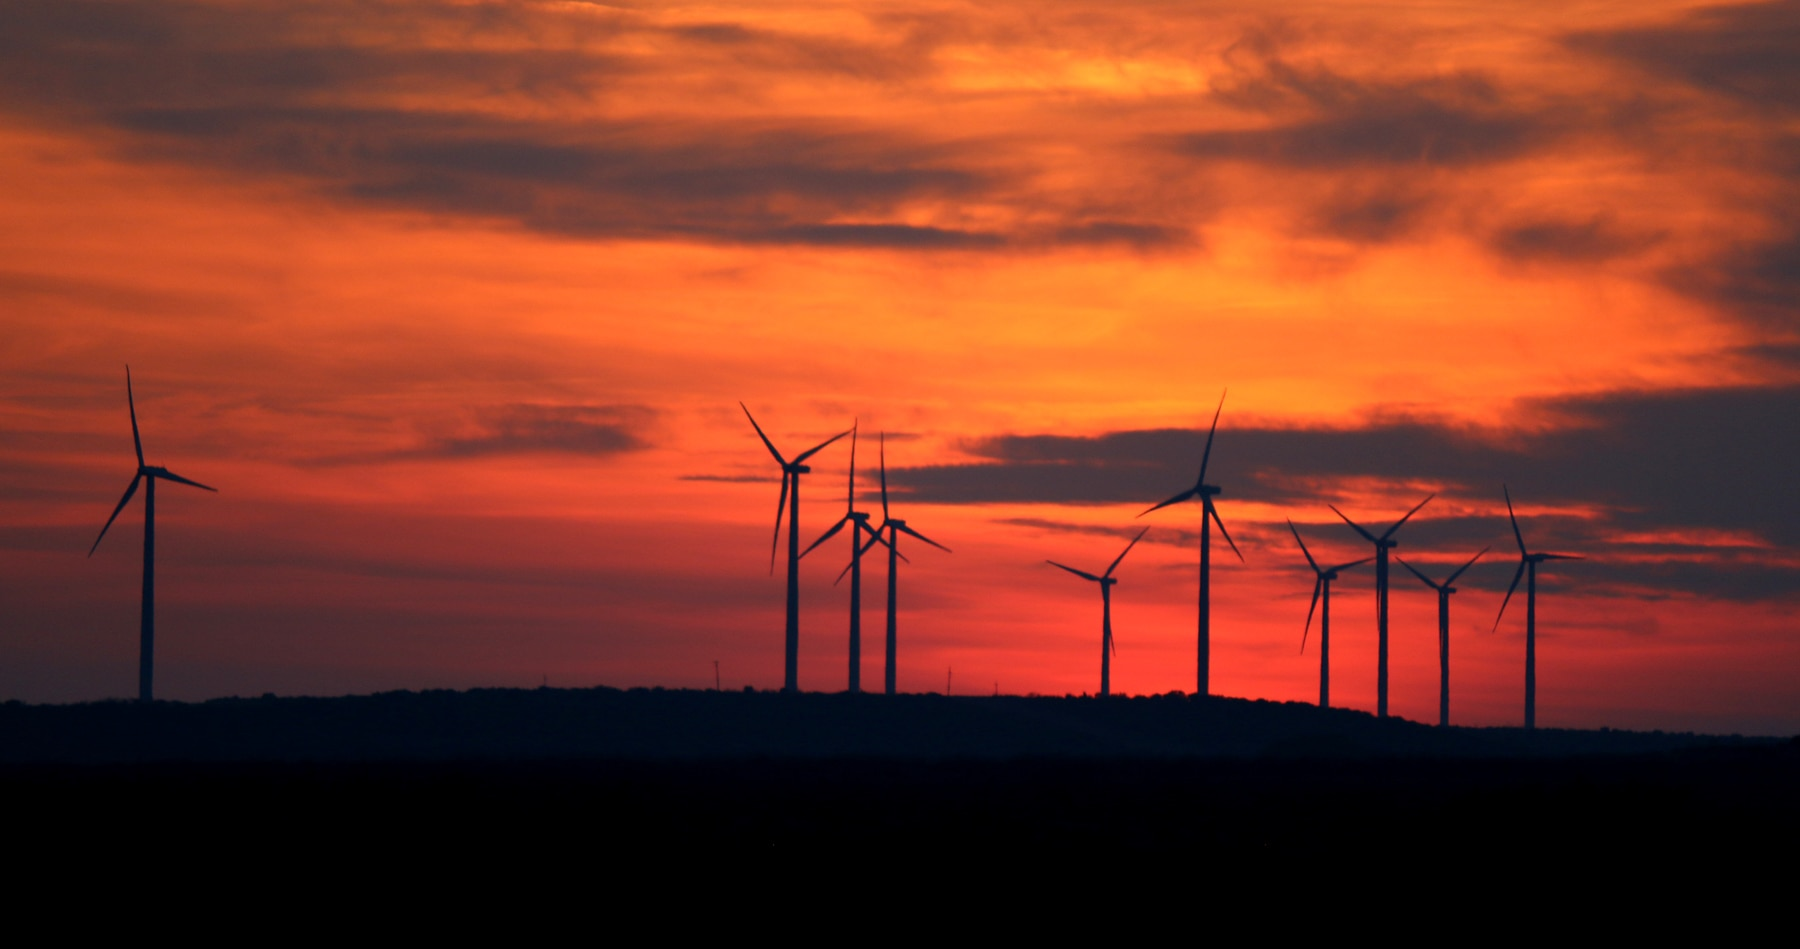 Line of wind turbines on ridge at sunset (ERCOT)